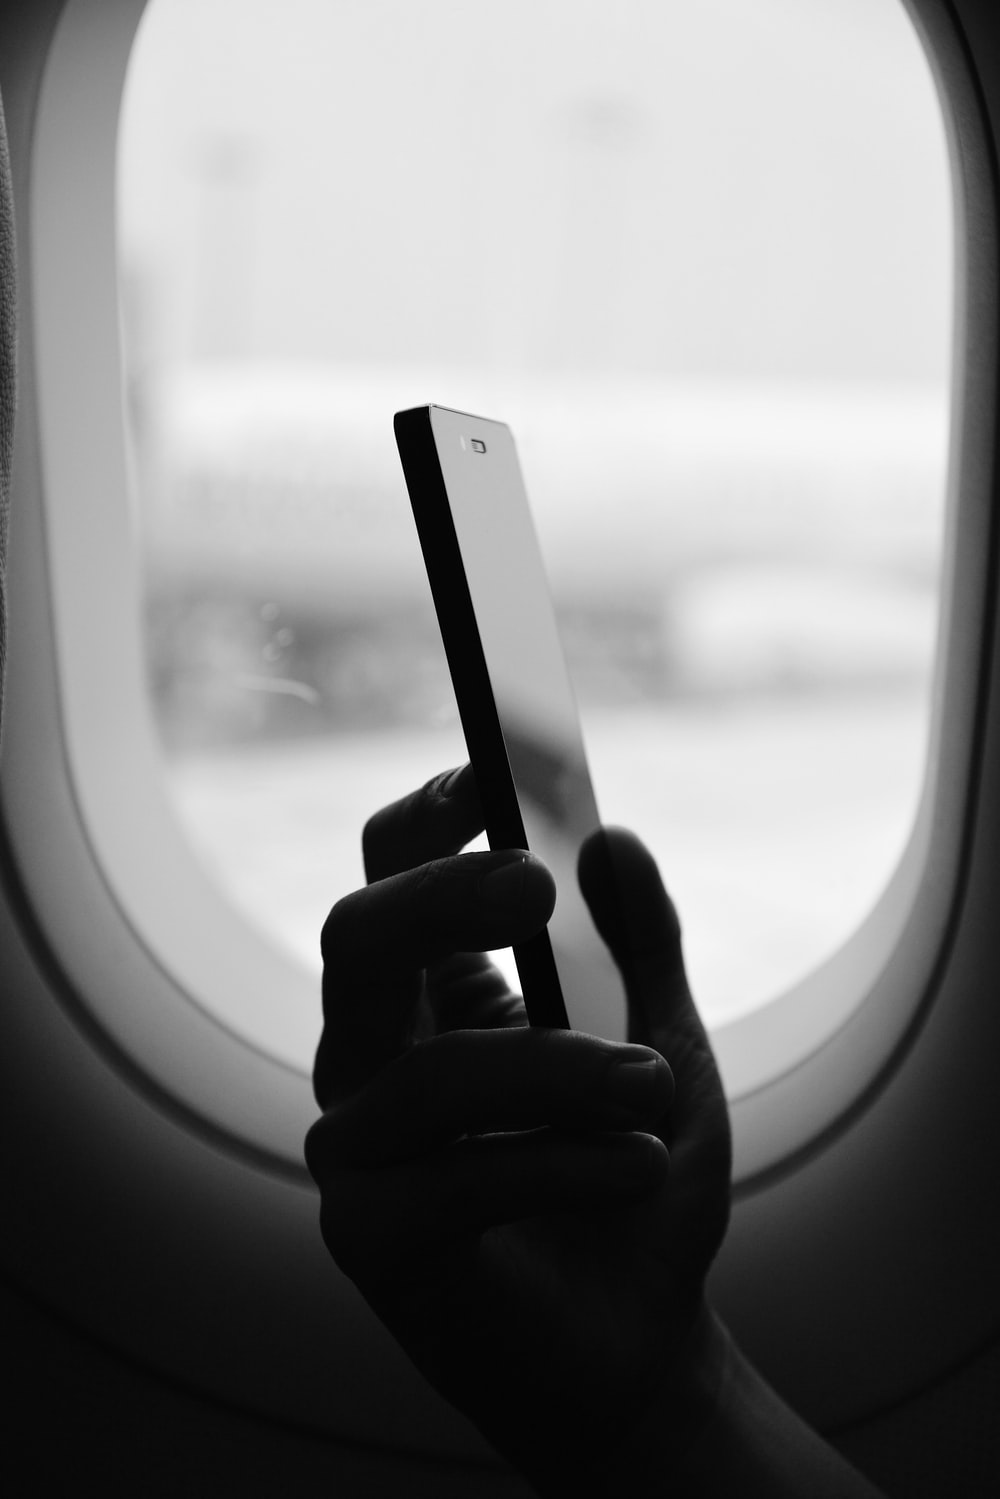 grayscale photography of person holding smartphone beside window